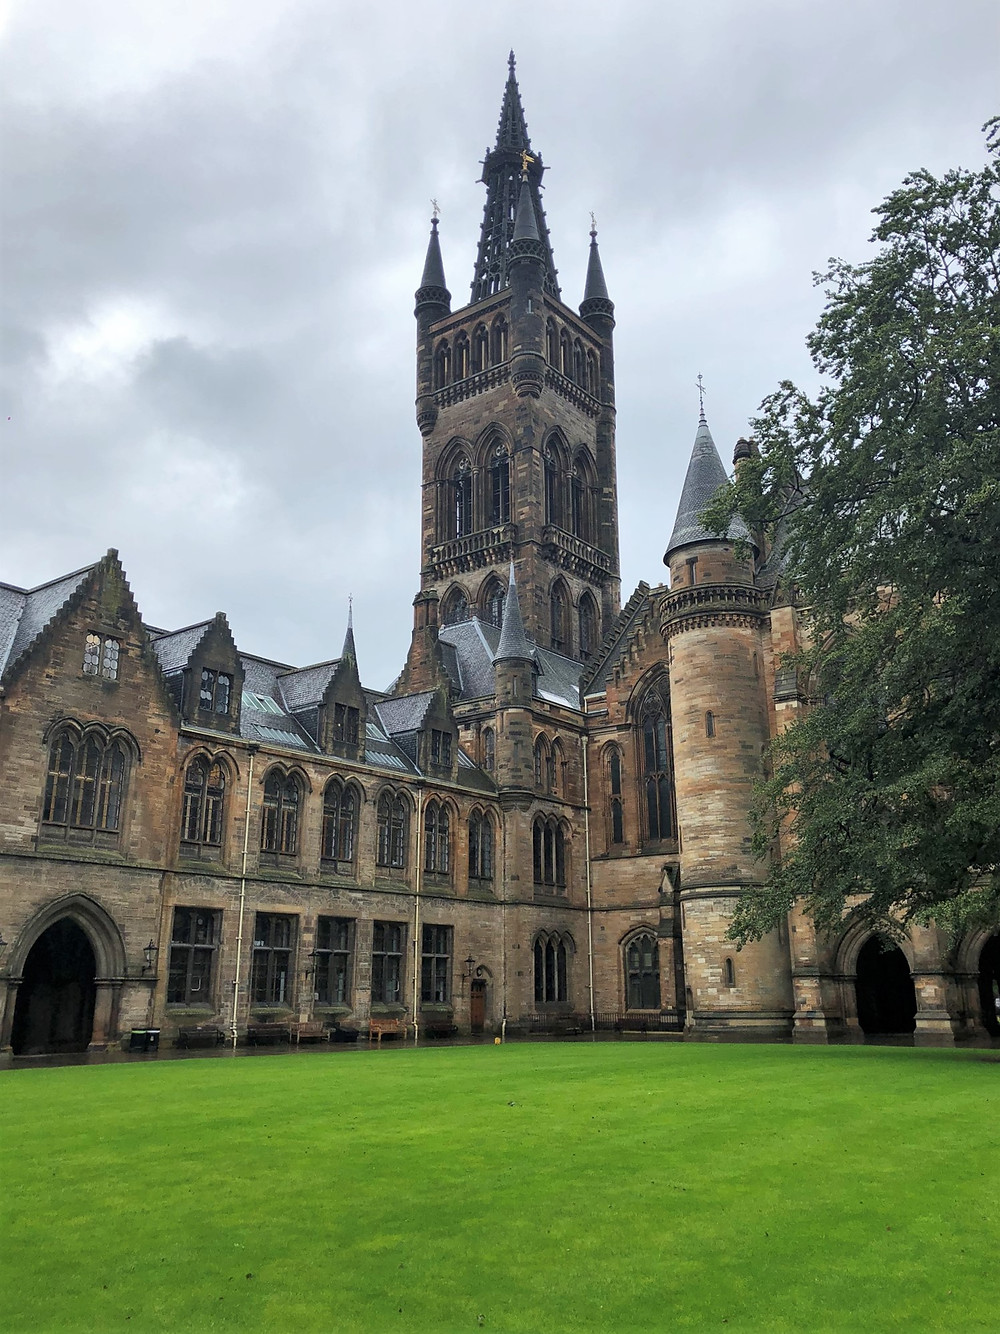 The signature Gothic bell tower rises 279 ft above the campus of the University of Glasgow